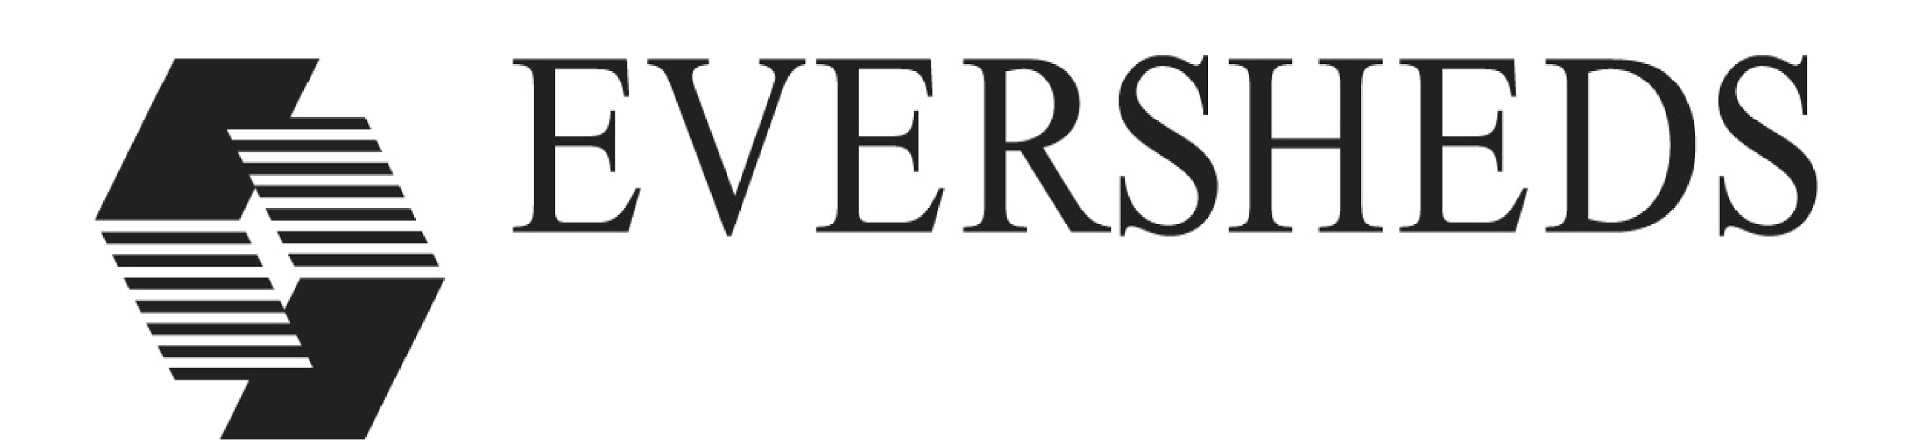 Eversheds branding is stronger than ever!